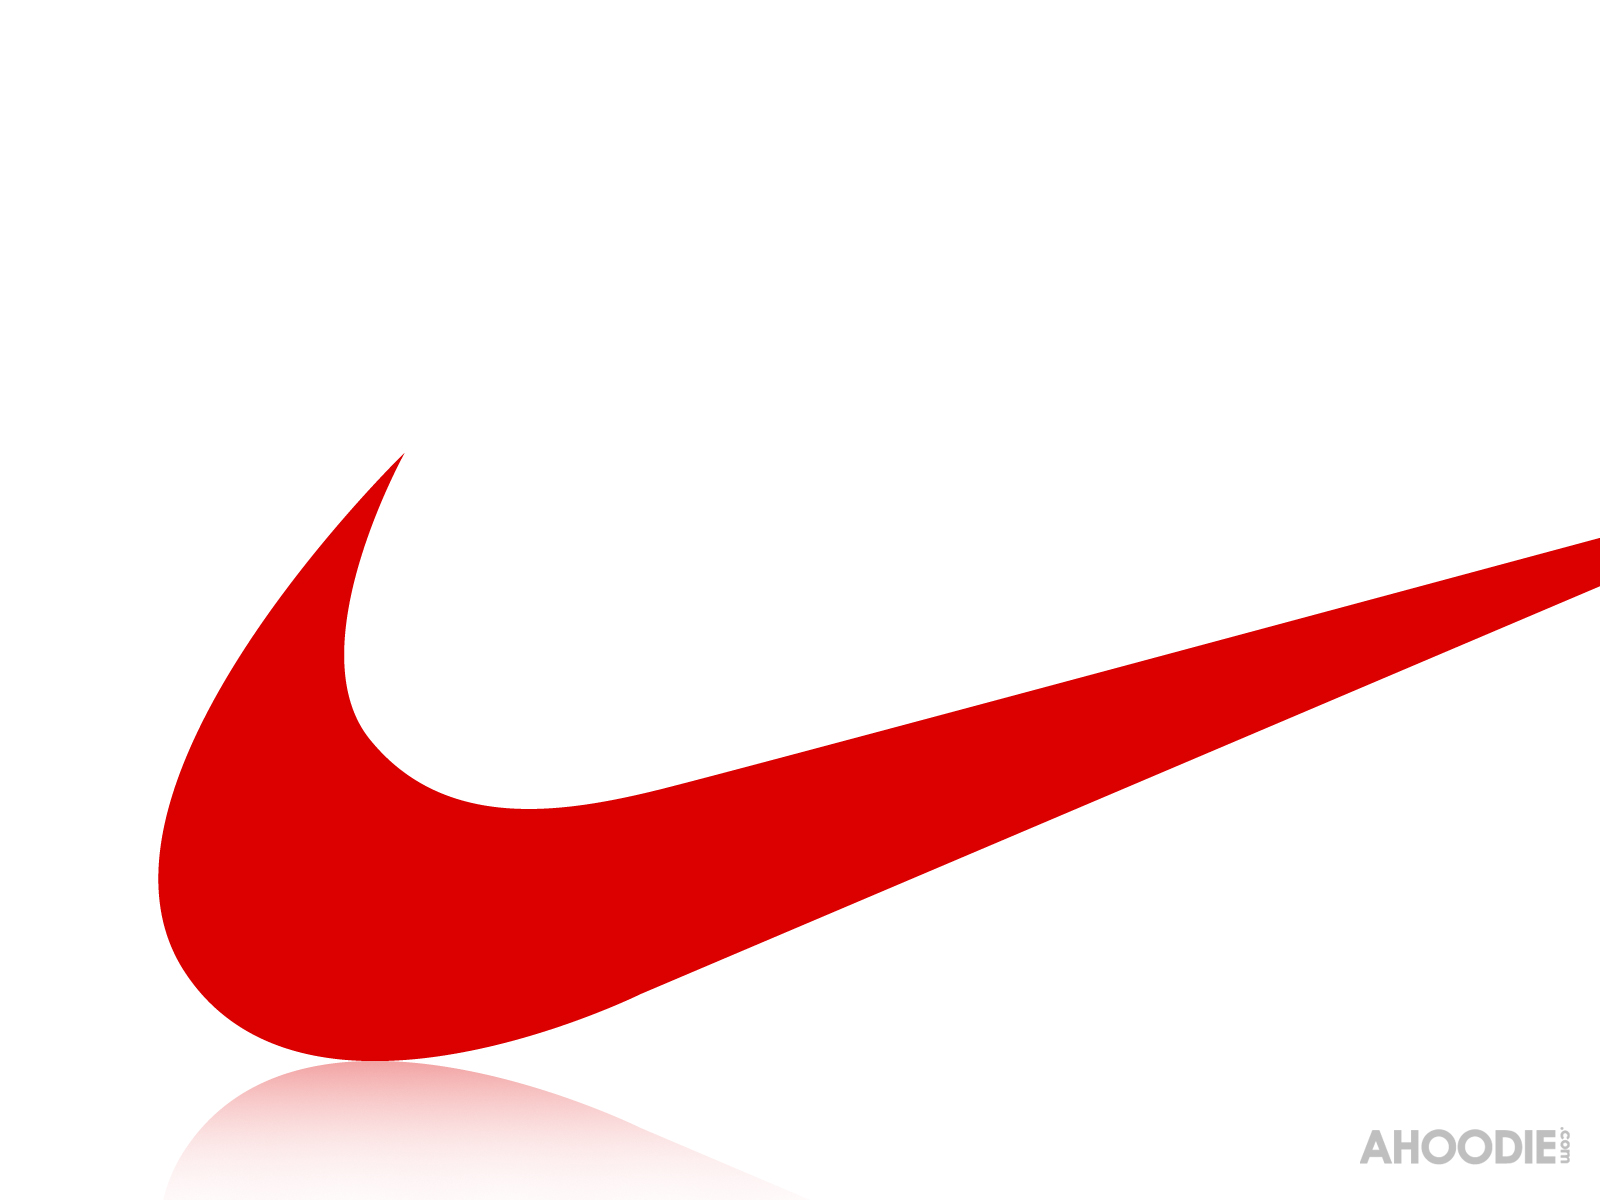 Nike Shoes With Swoosh